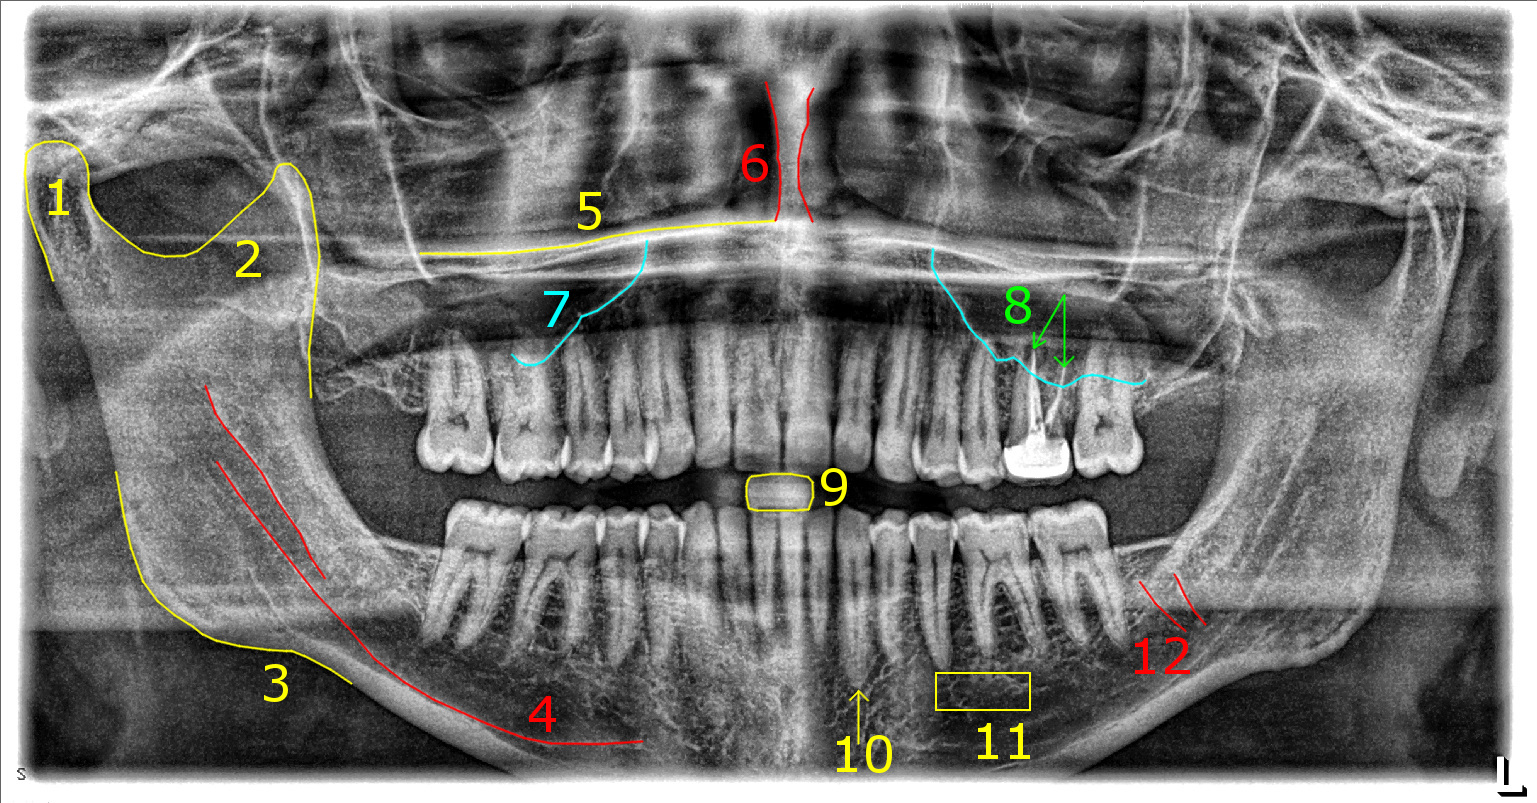 Smile Fun Things To Look For In Your Dental Xrays Sauropod. 1 Canine 2 Premolars And 3 Molars On Each Side Top Bottom For A Total Of 32 Teeth Because I've Had All Four 3rd Removed I'm Down To 28. Wiring. Mouth Diagram Labeled Radiograph At Scoala.co